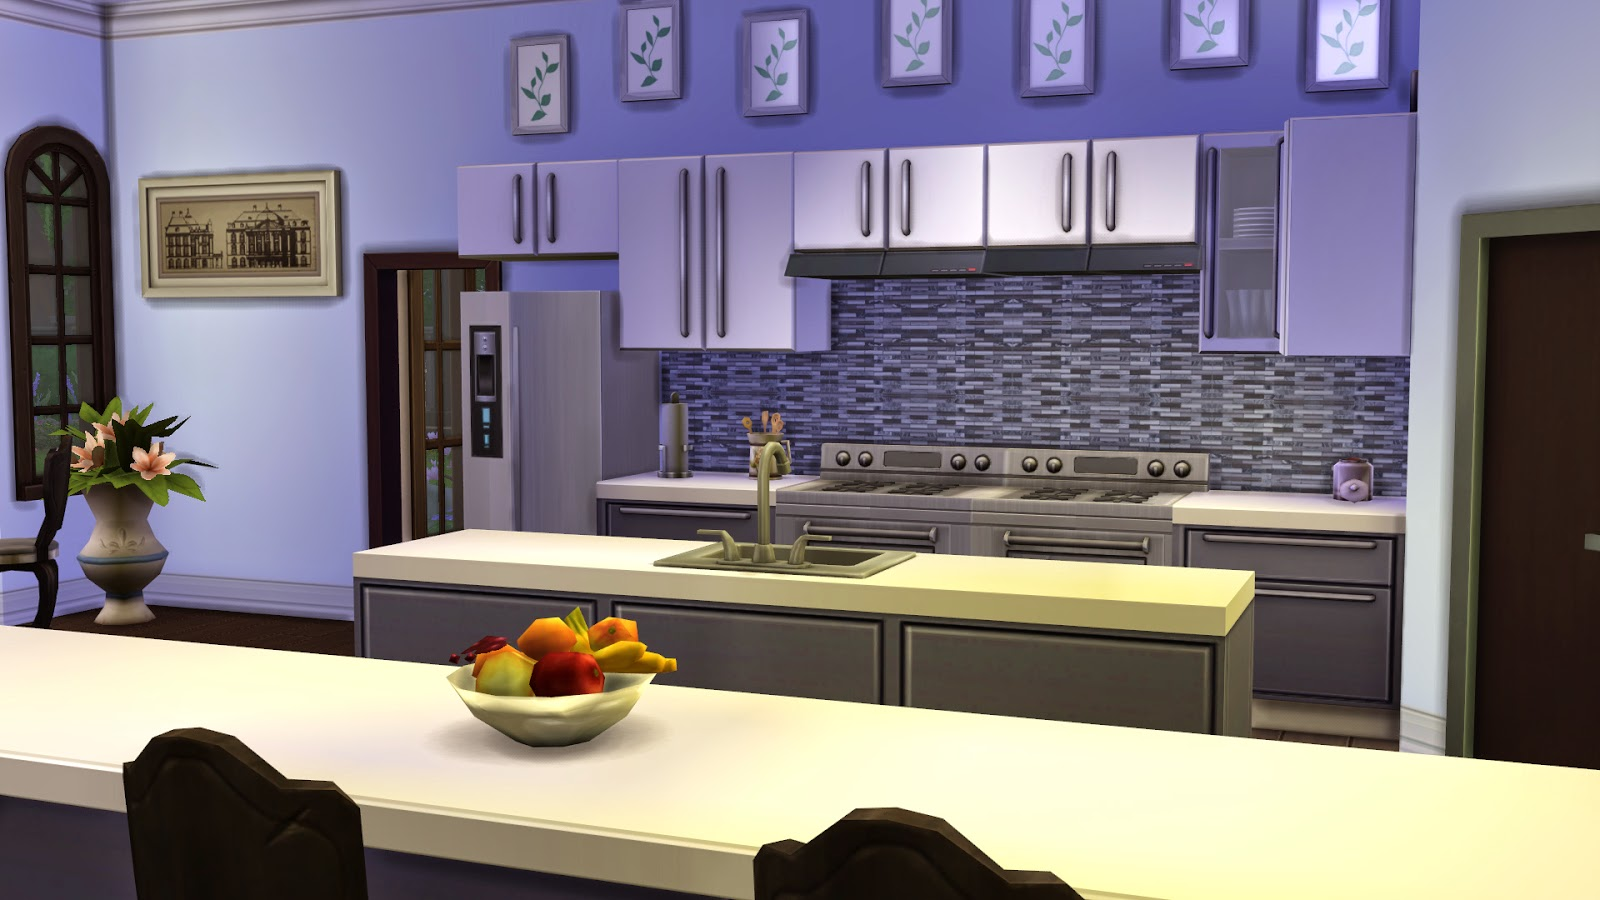 Modern Kitchen Backsplash 2014 my sims 4 blog: modern glass tile mosaic kitchen backsplash